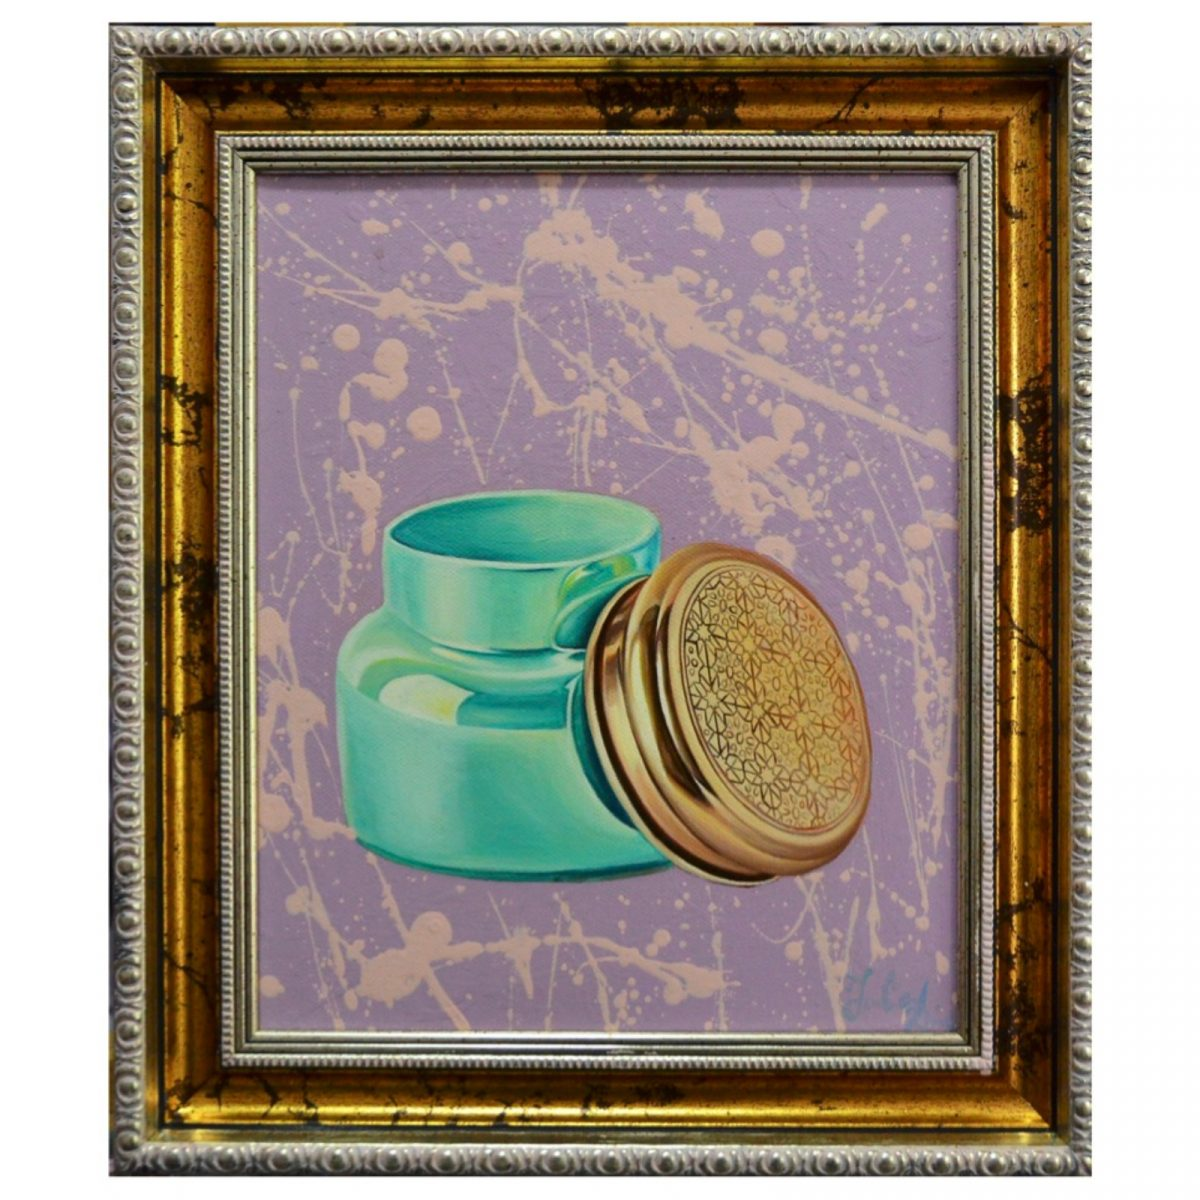 Turquoise Beauty Jar | Artistic marriage gift idea | Mishkalo Art Registry